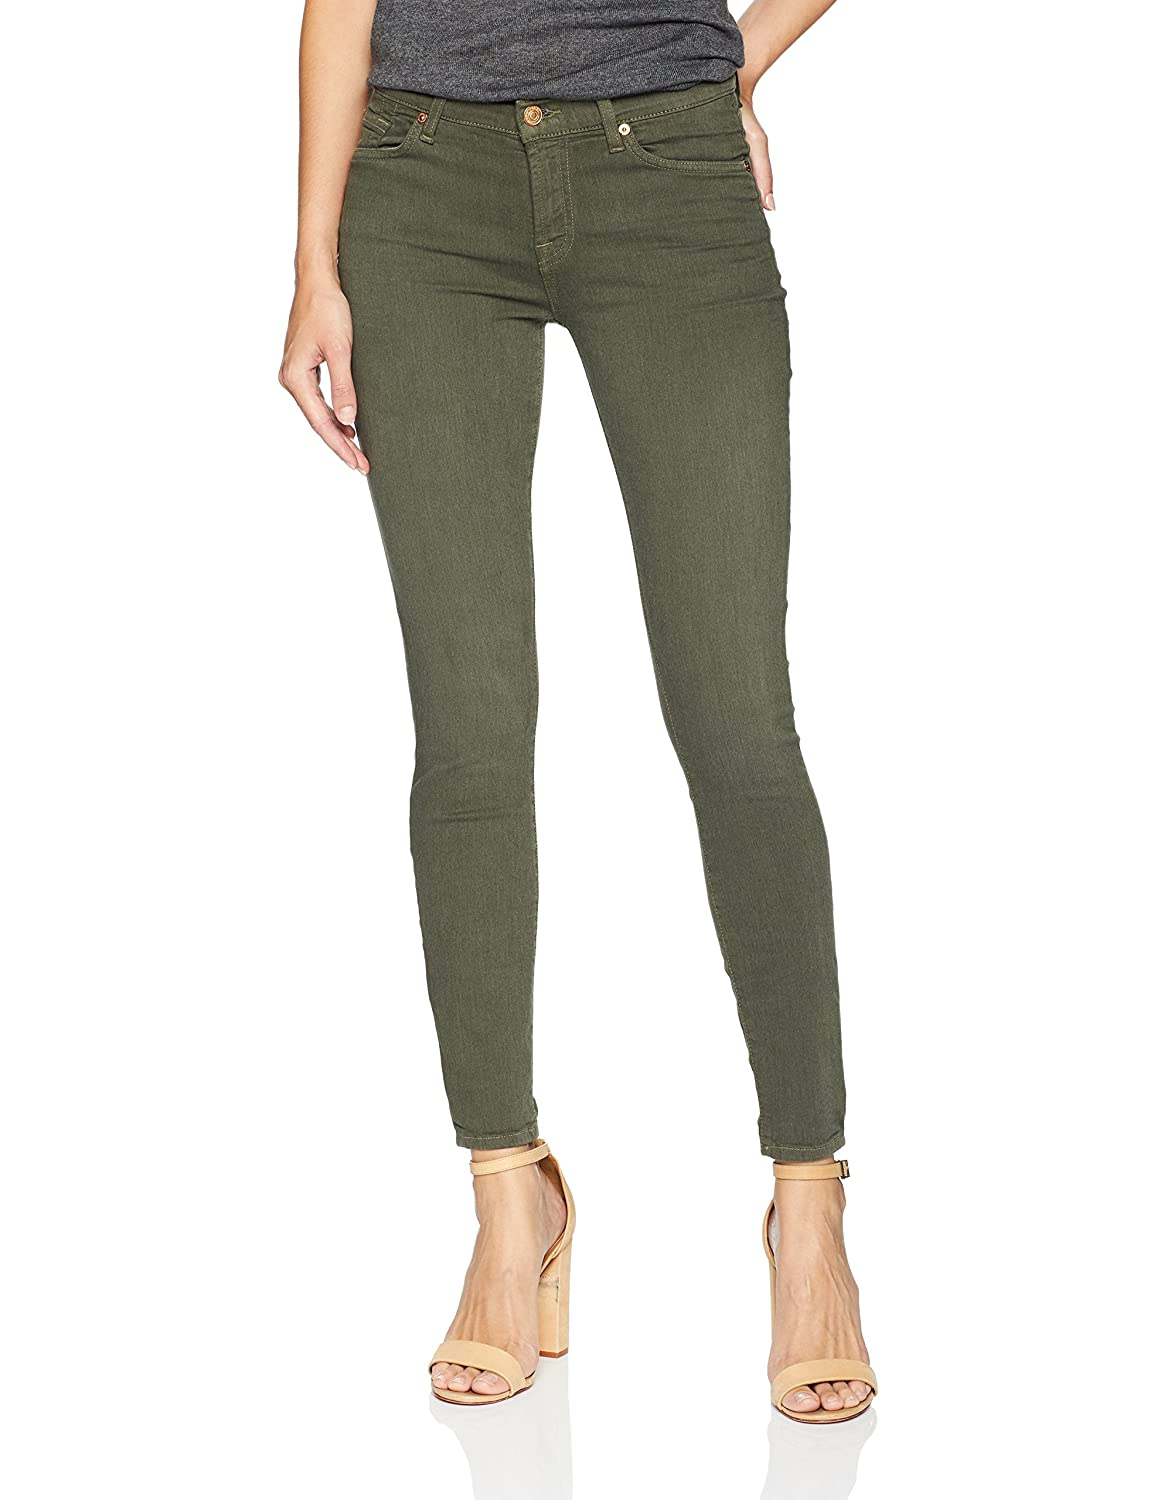 7 For All Mankind Women's Ankle Skinny Sandwashed Twill Jean AU8097894A